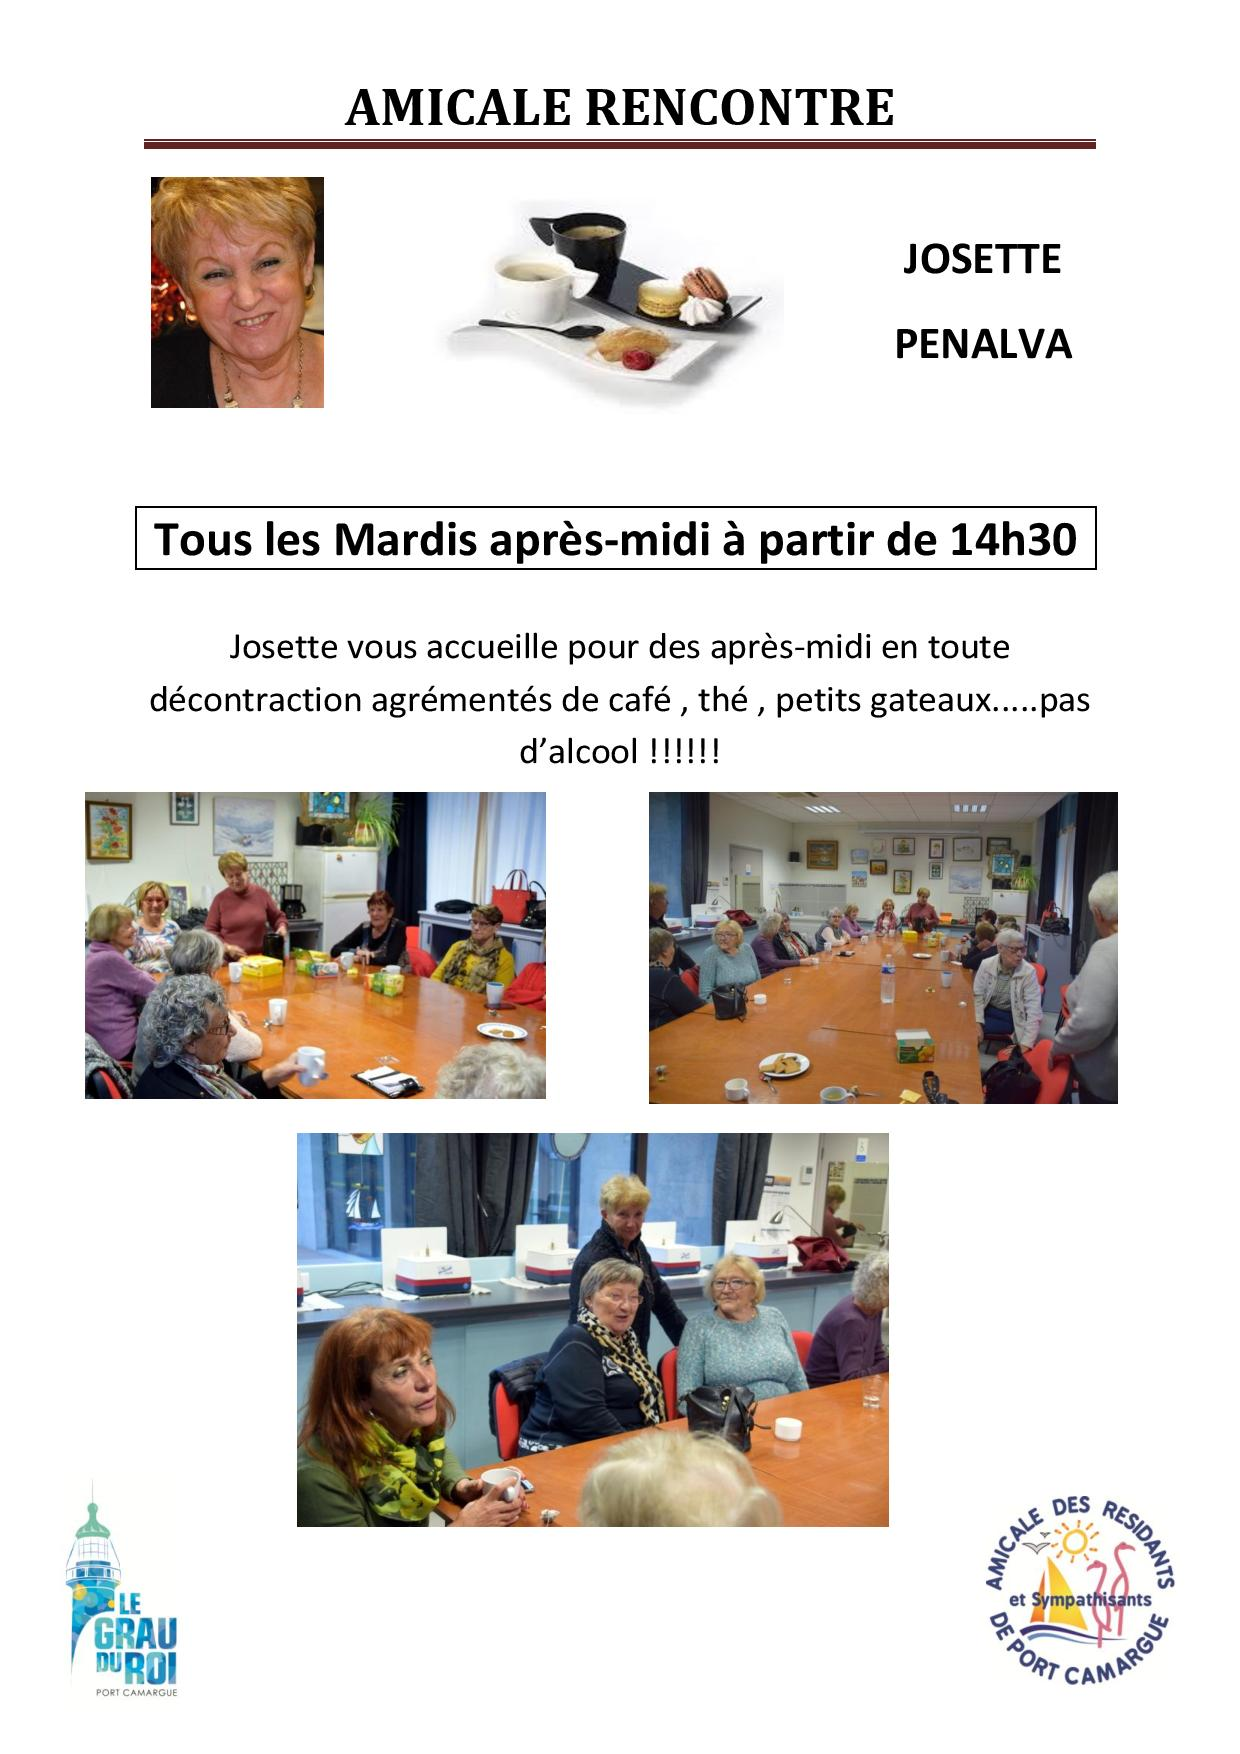 Amicale rencontre-page-001